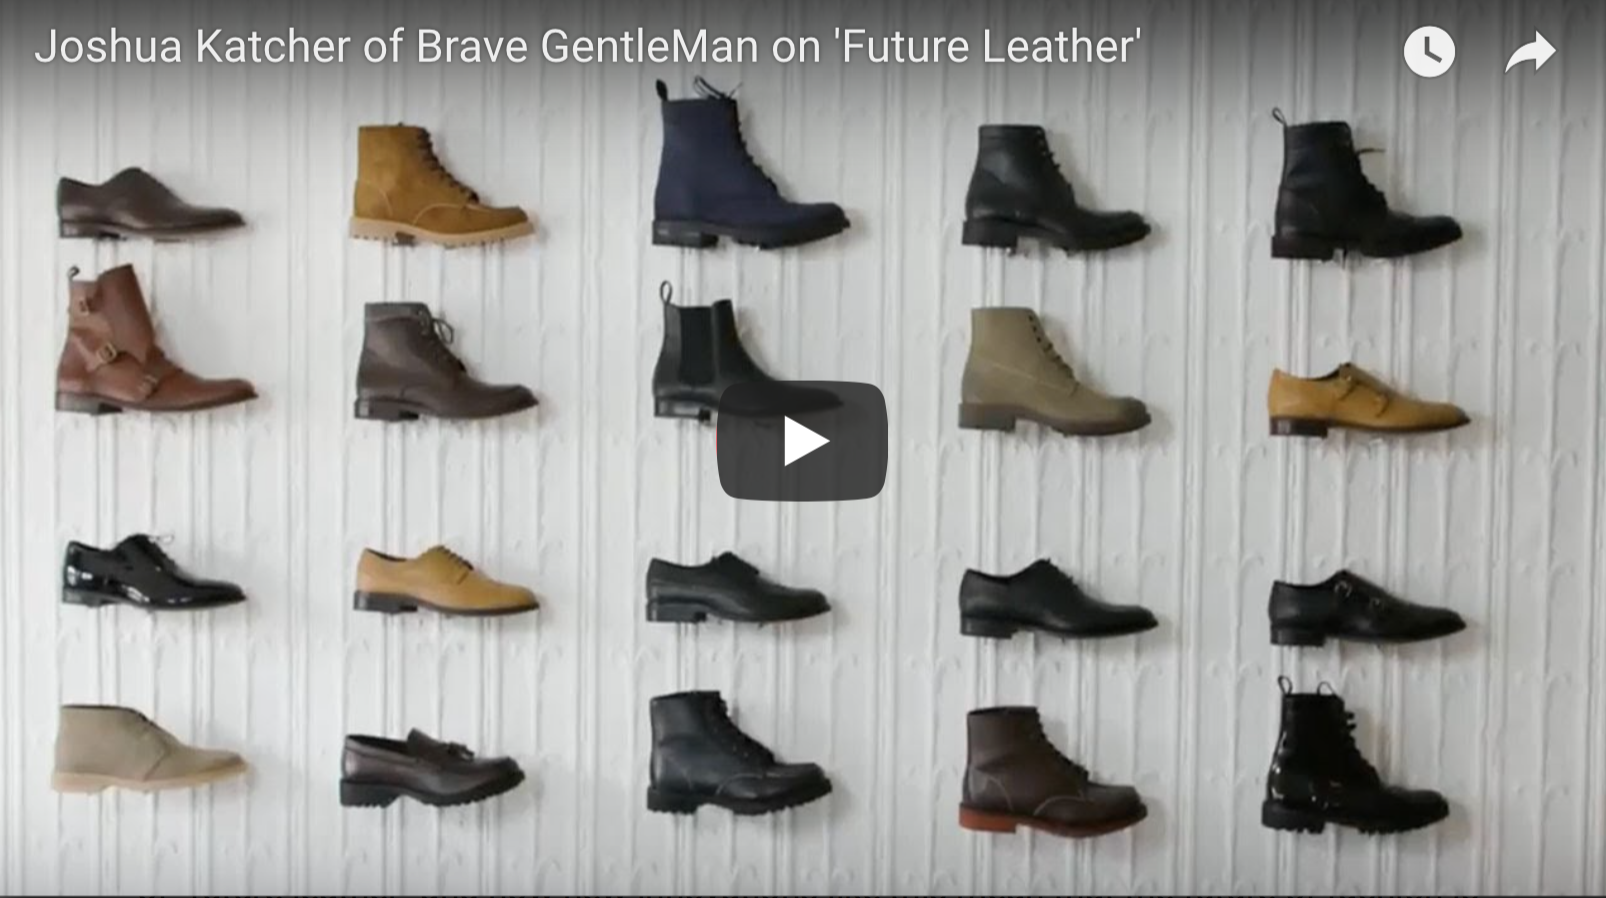 Joshua Katcher of Brave GentleMan on 'Future Leather | VeganFlix